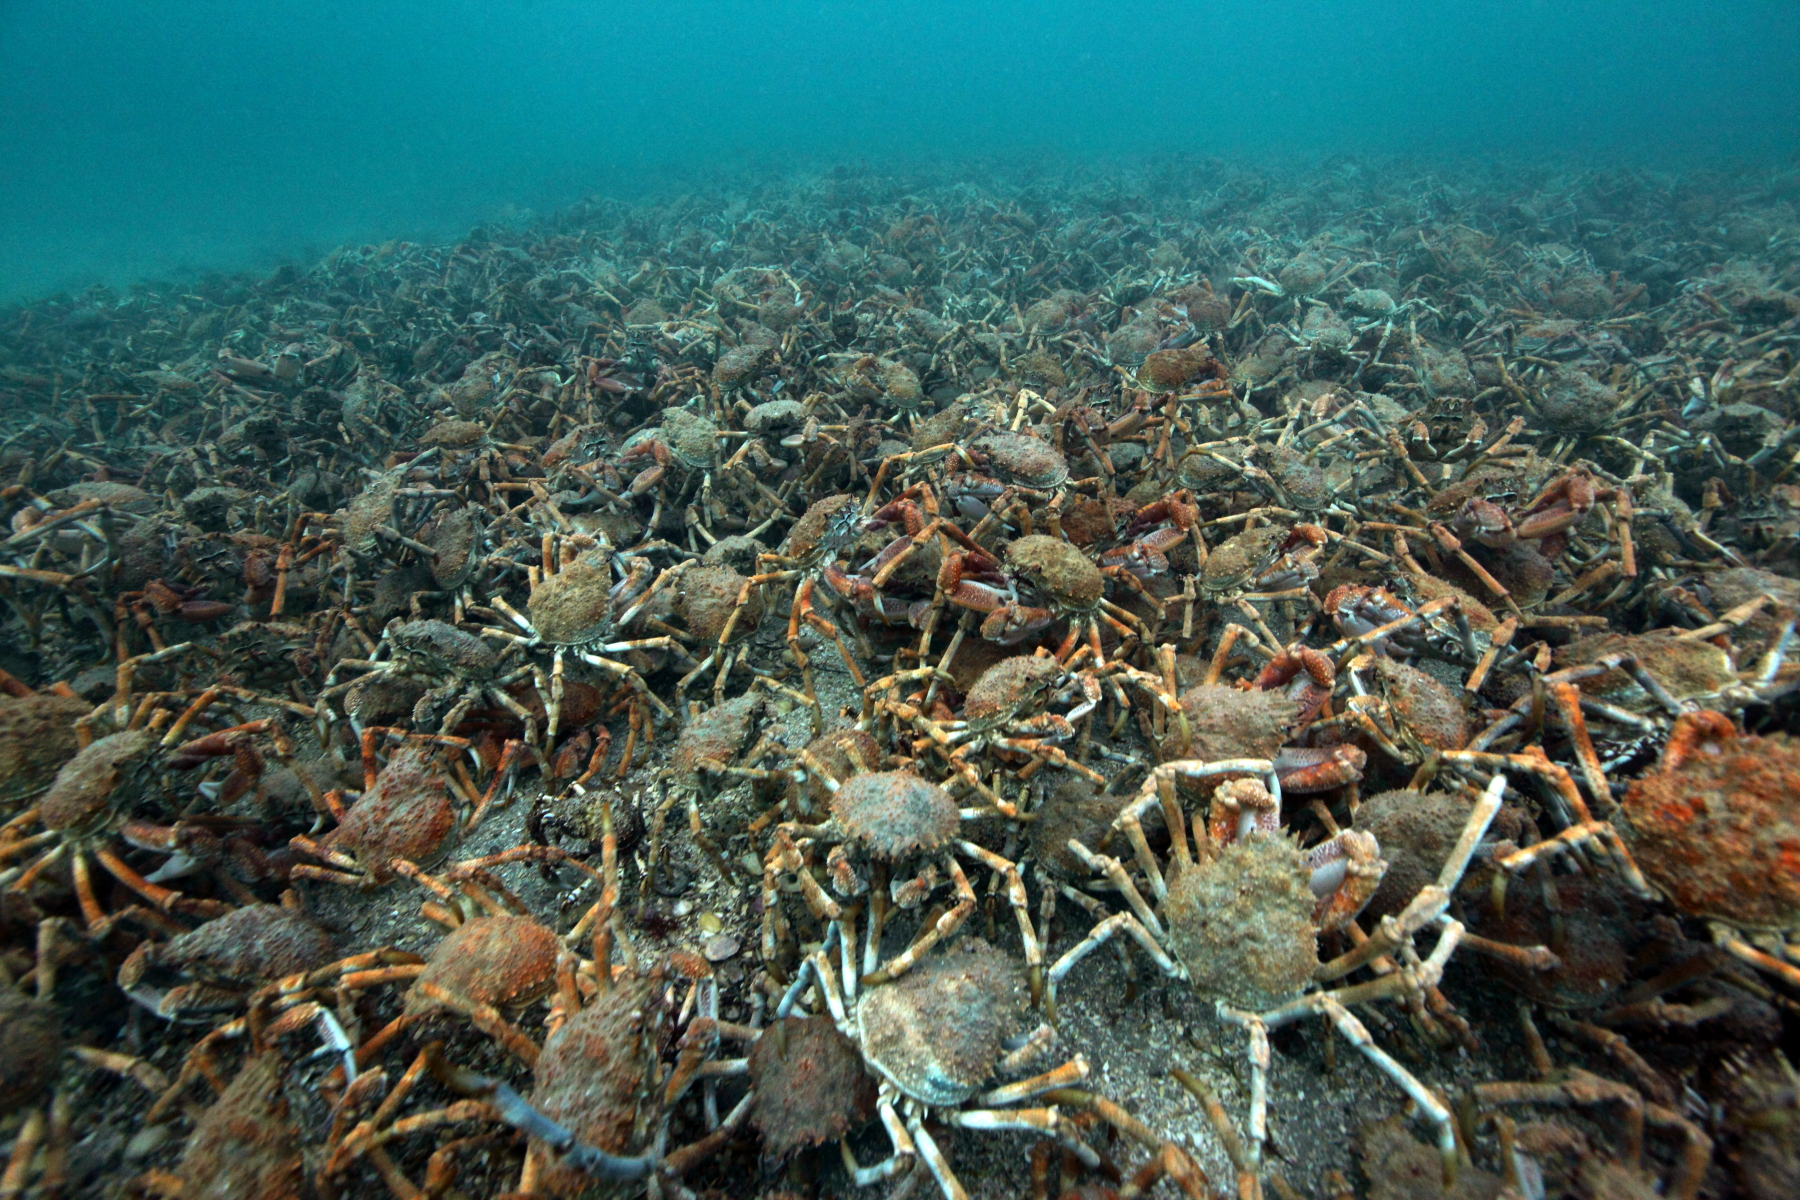 A cast of crabs. Spider crabs gather on mass in Port Phillip Bay to shed their old shells and develop a new exoskeletons. During the process the crabs are particularly vulnerable to predation as their new shells harden so they adopt the age old approach of safety in numbers. The spectacular event occurs annually, but the time of the year and location varies. This year the crabs migrated to the shallow waters of the southern Mornington Peninsula in late June and remained in the area for about a fortnight before dispersing.